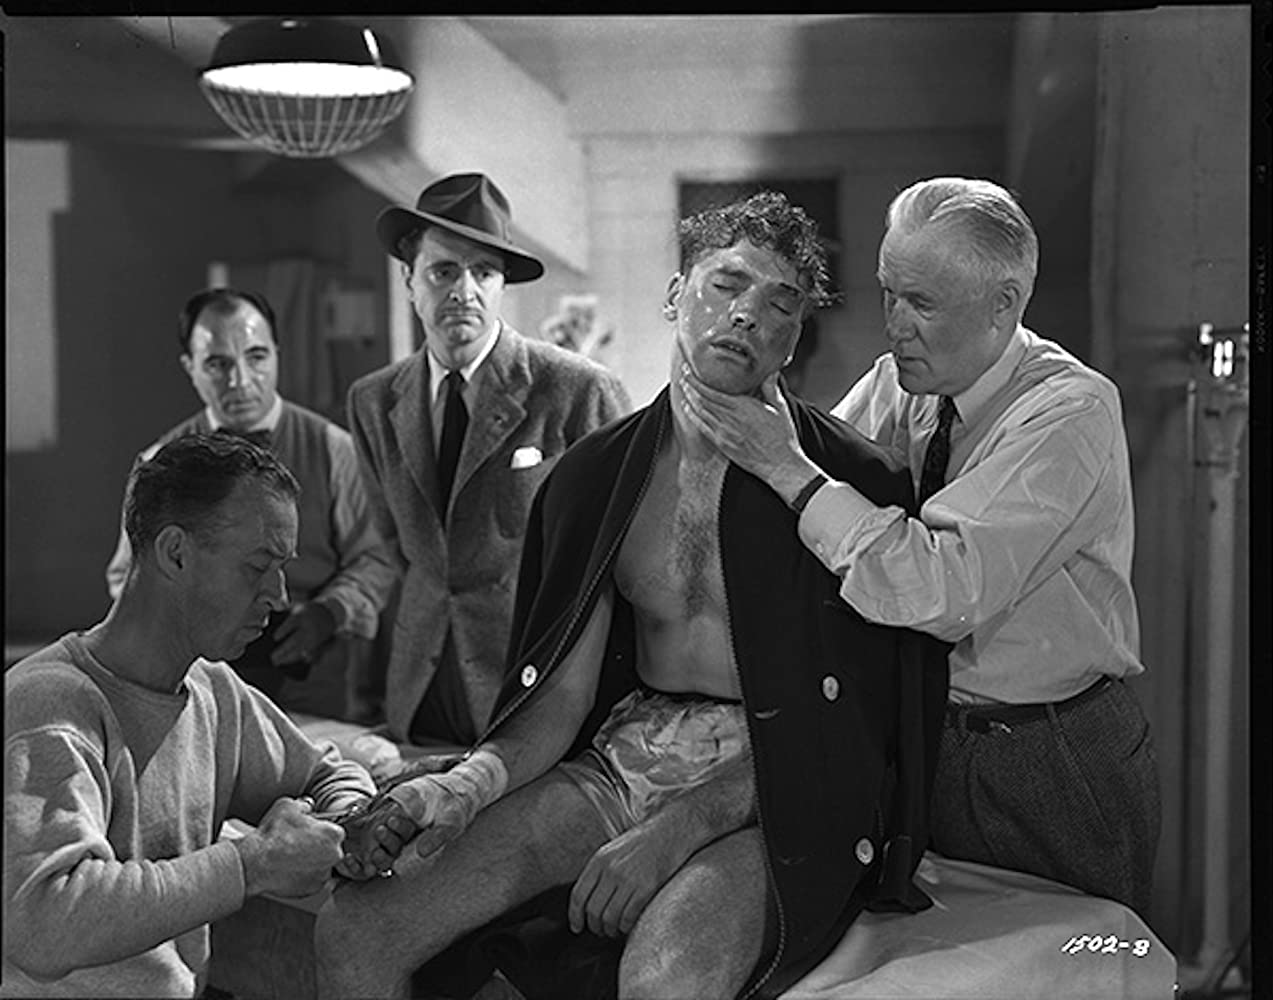 Burt Lancaster and Sam Levene in The Killers (1946)